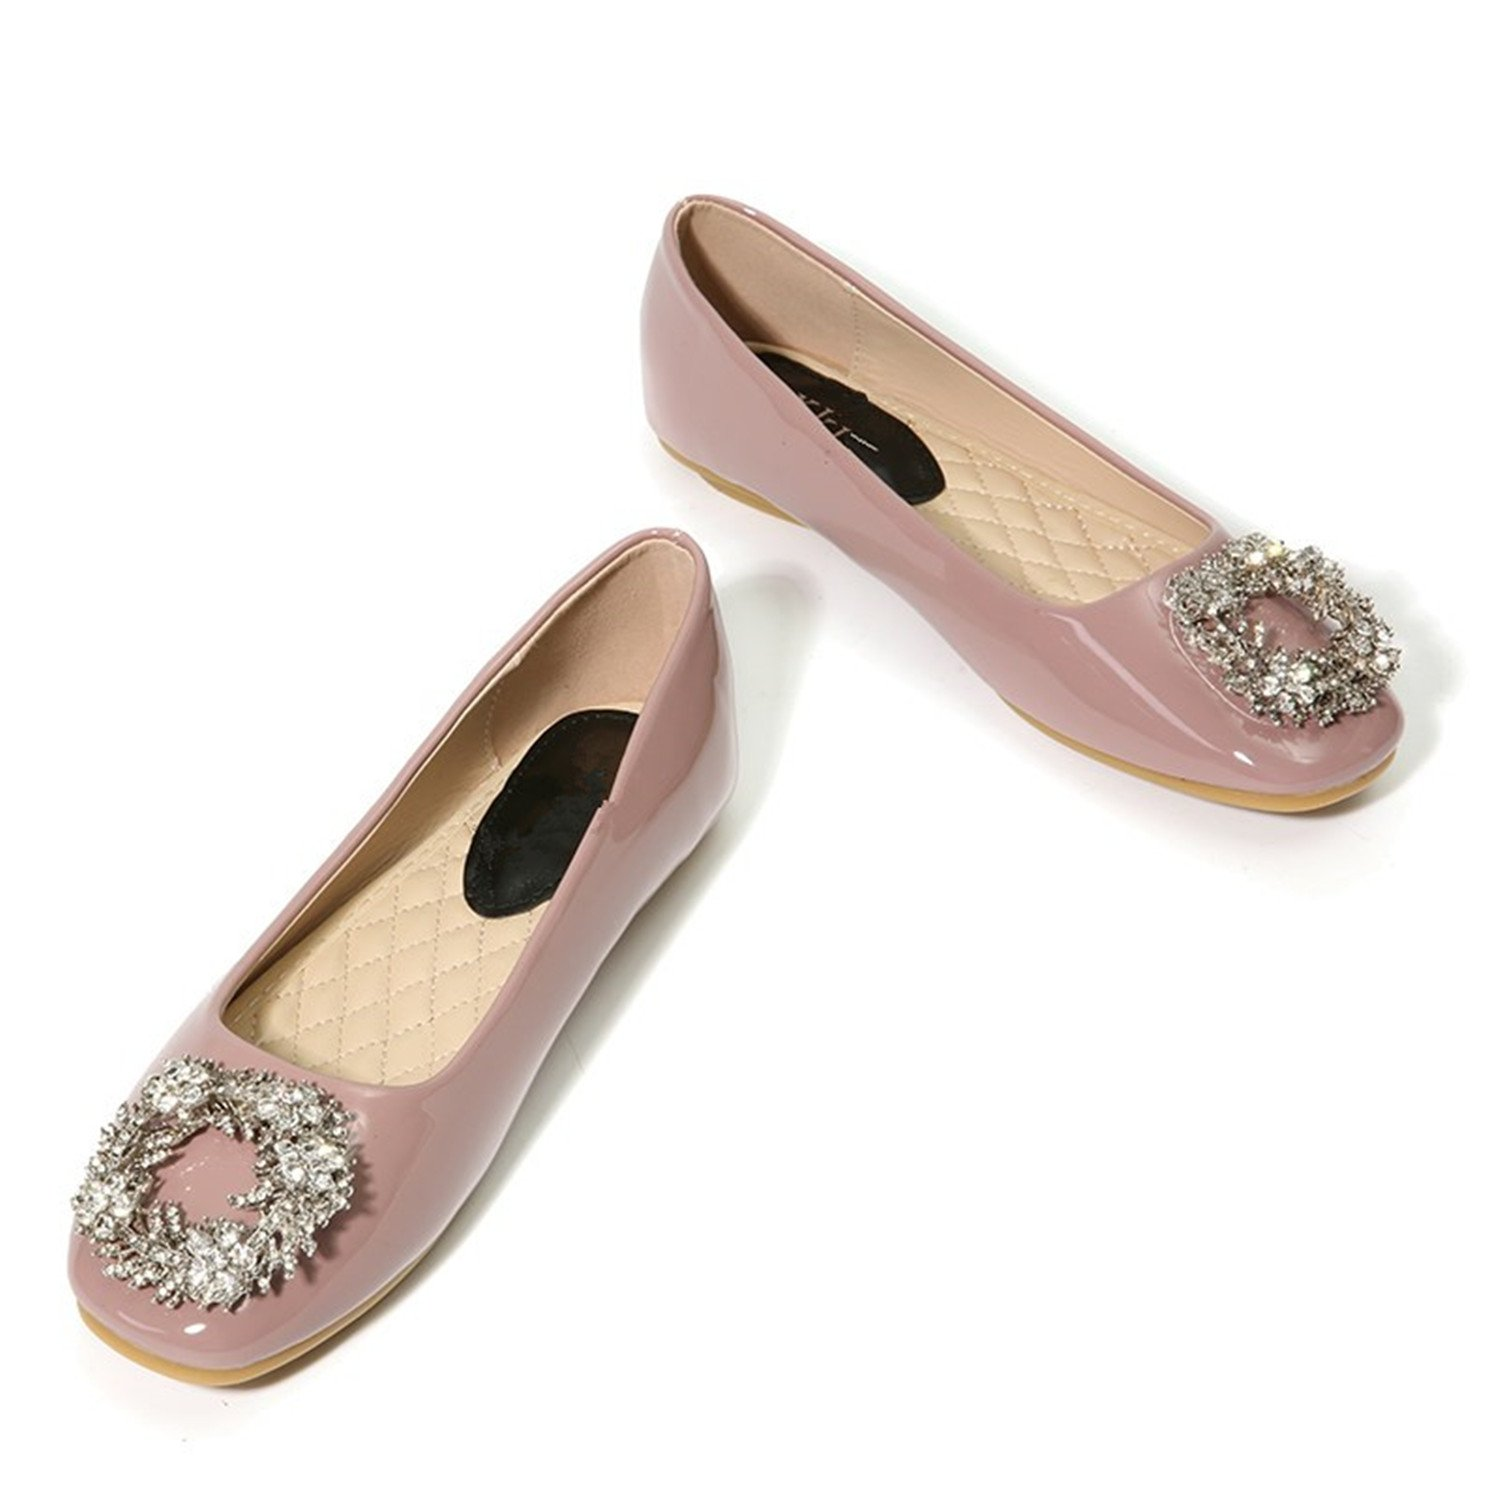 Beverly Stewart Women Ballet Flats Red/Pink/Beige Crystal Flowers Patent Leather Flat Shoes Ladies Rhinestone Square Toe Slip On Shoes B075R2ZK2P 6.5 B(M) US|Pink